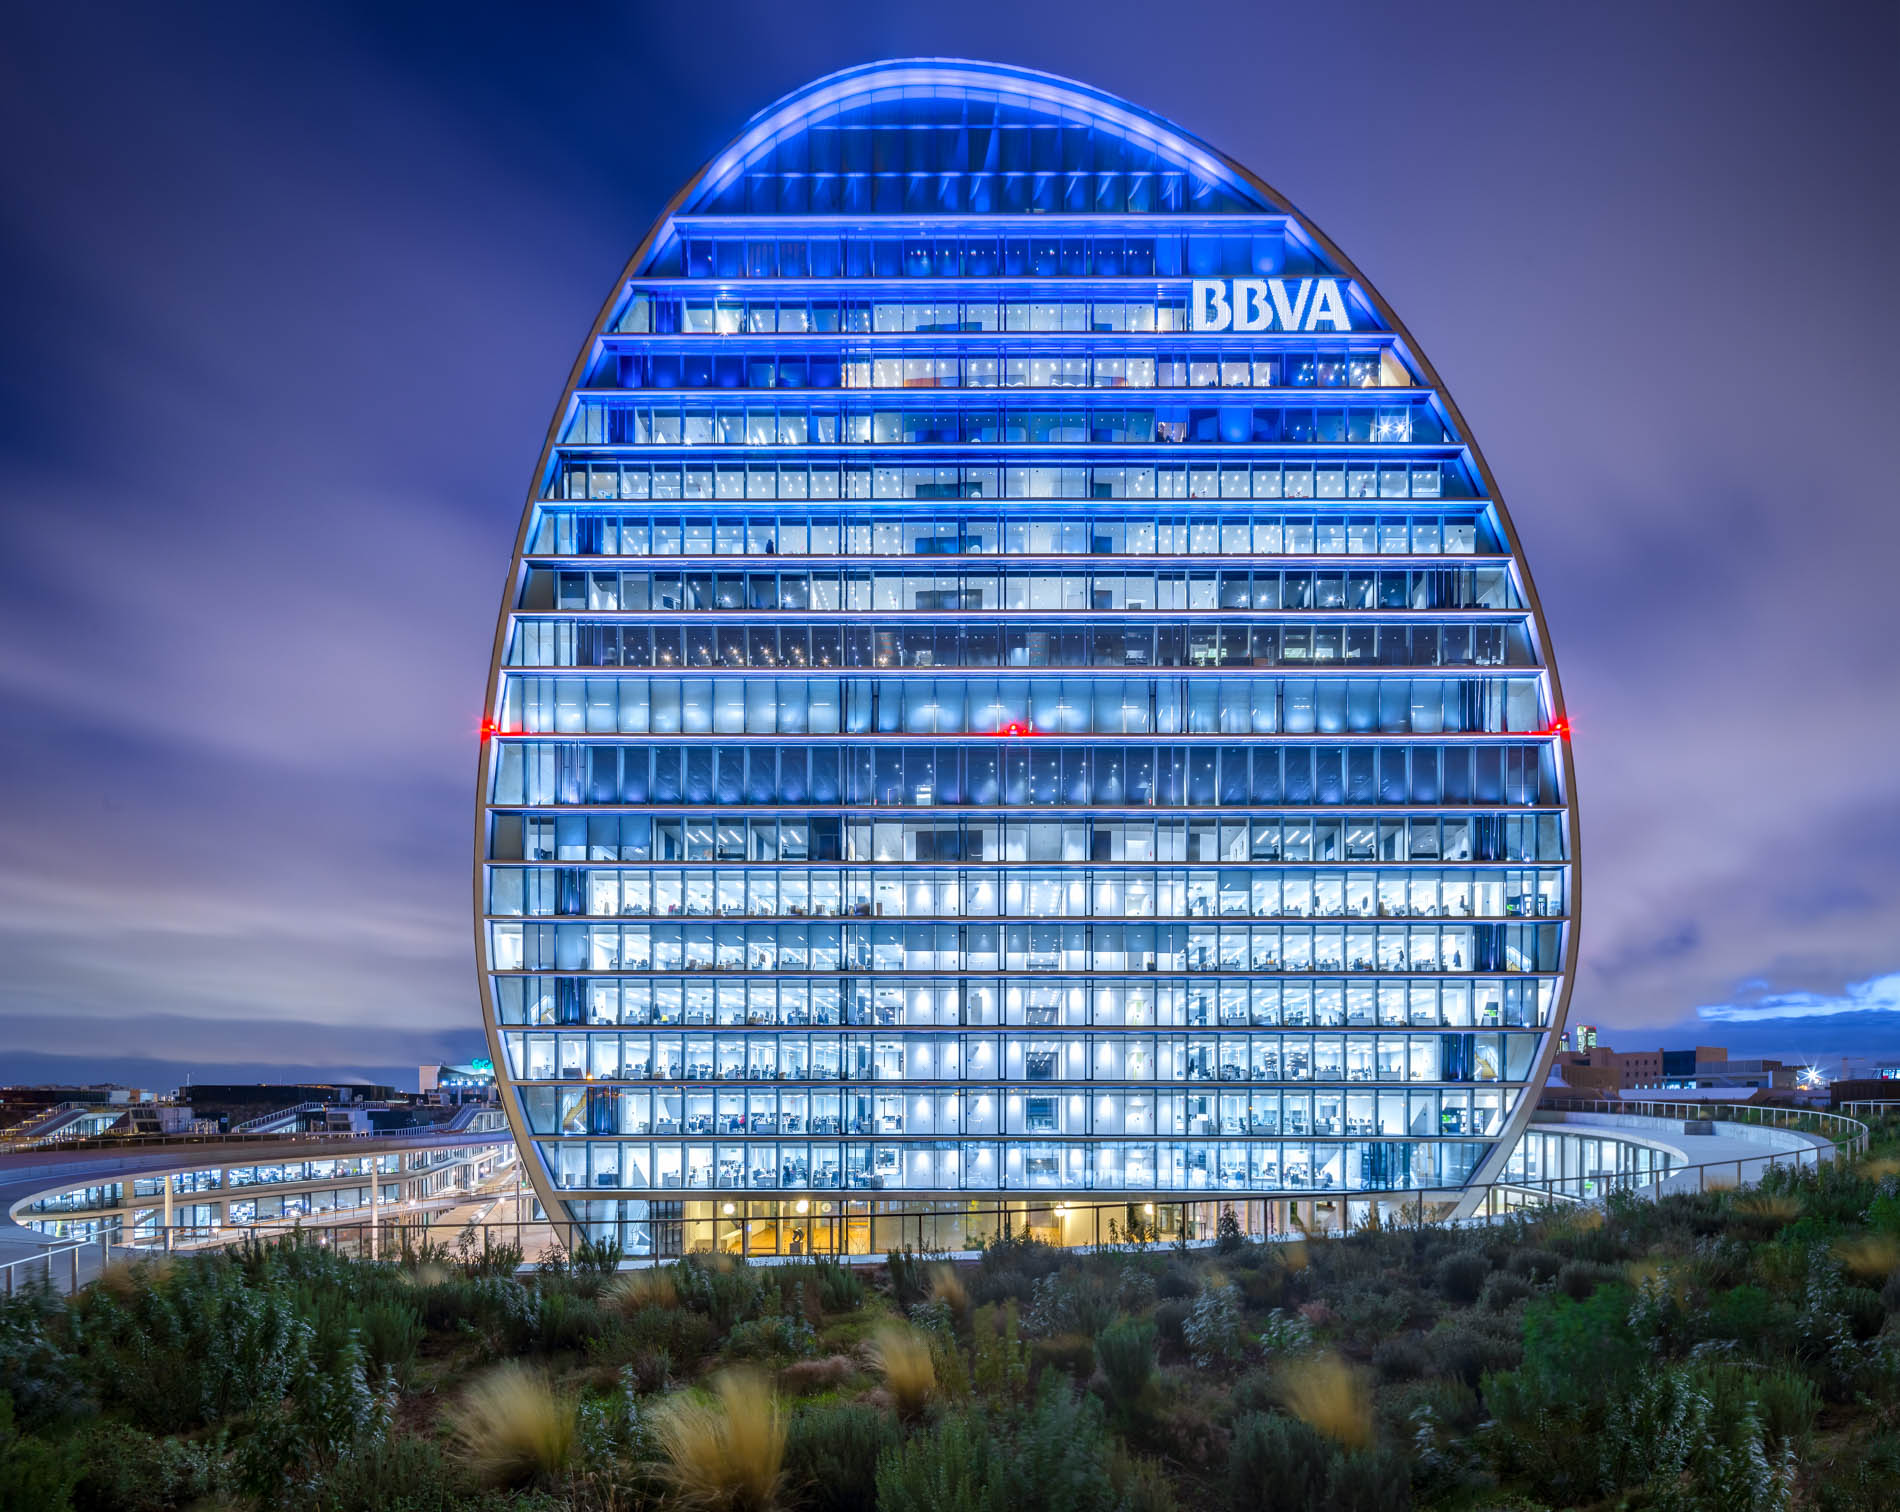 https://shareholdersandinvestors.bbva.com/wp-content/uploads/2017/06/BBVA-HEADQUARTERS-MADRID-149-1.jpg